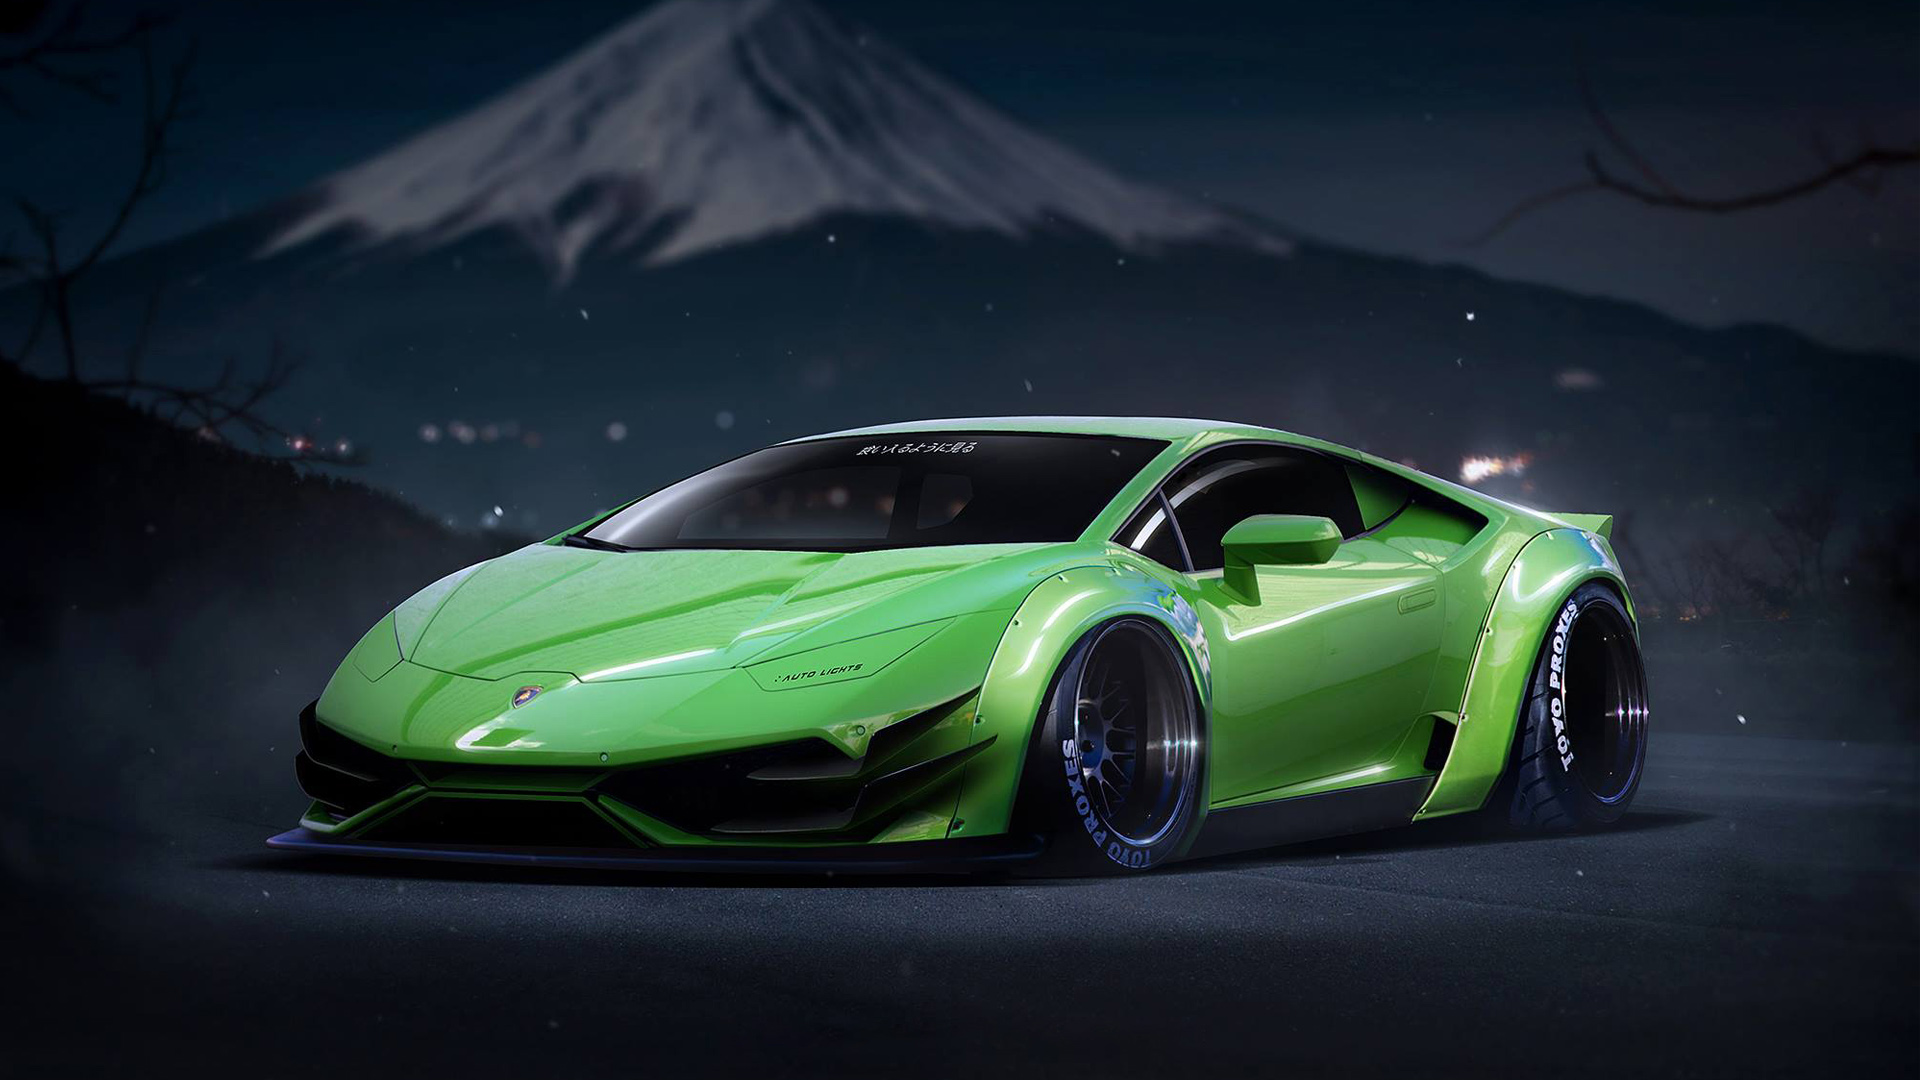 2016 lamborghini huracan lp640 4 superleggera wallpaper. Black Bedroom Furniture Sets. Home Design Ideas